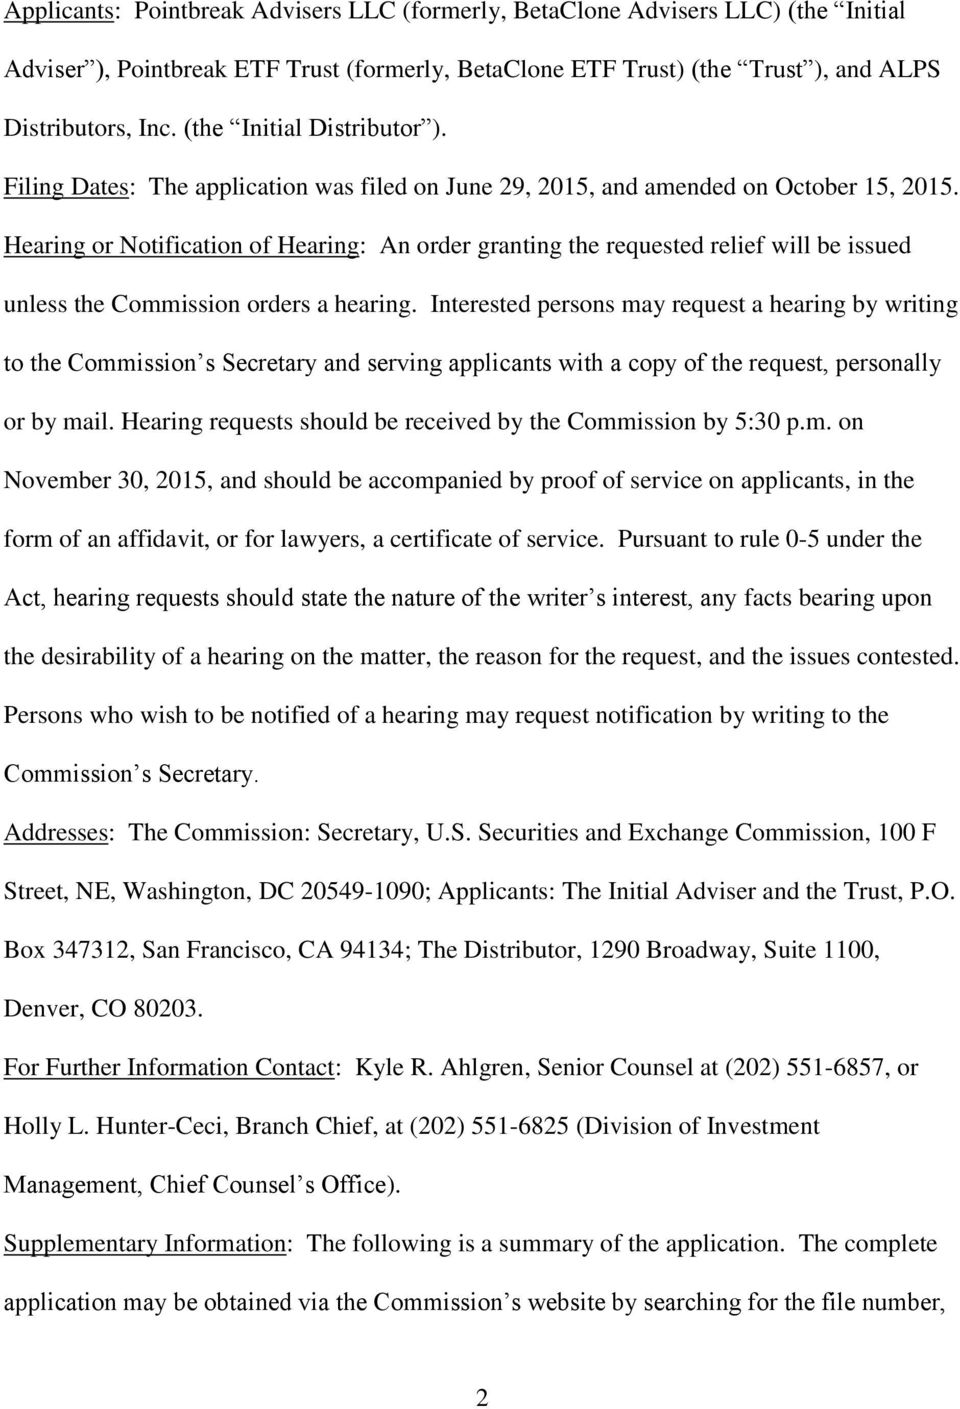 Hearing or Notification of Hearing: An order granting the requested relief will be issued unless the Commission orders a hearing.